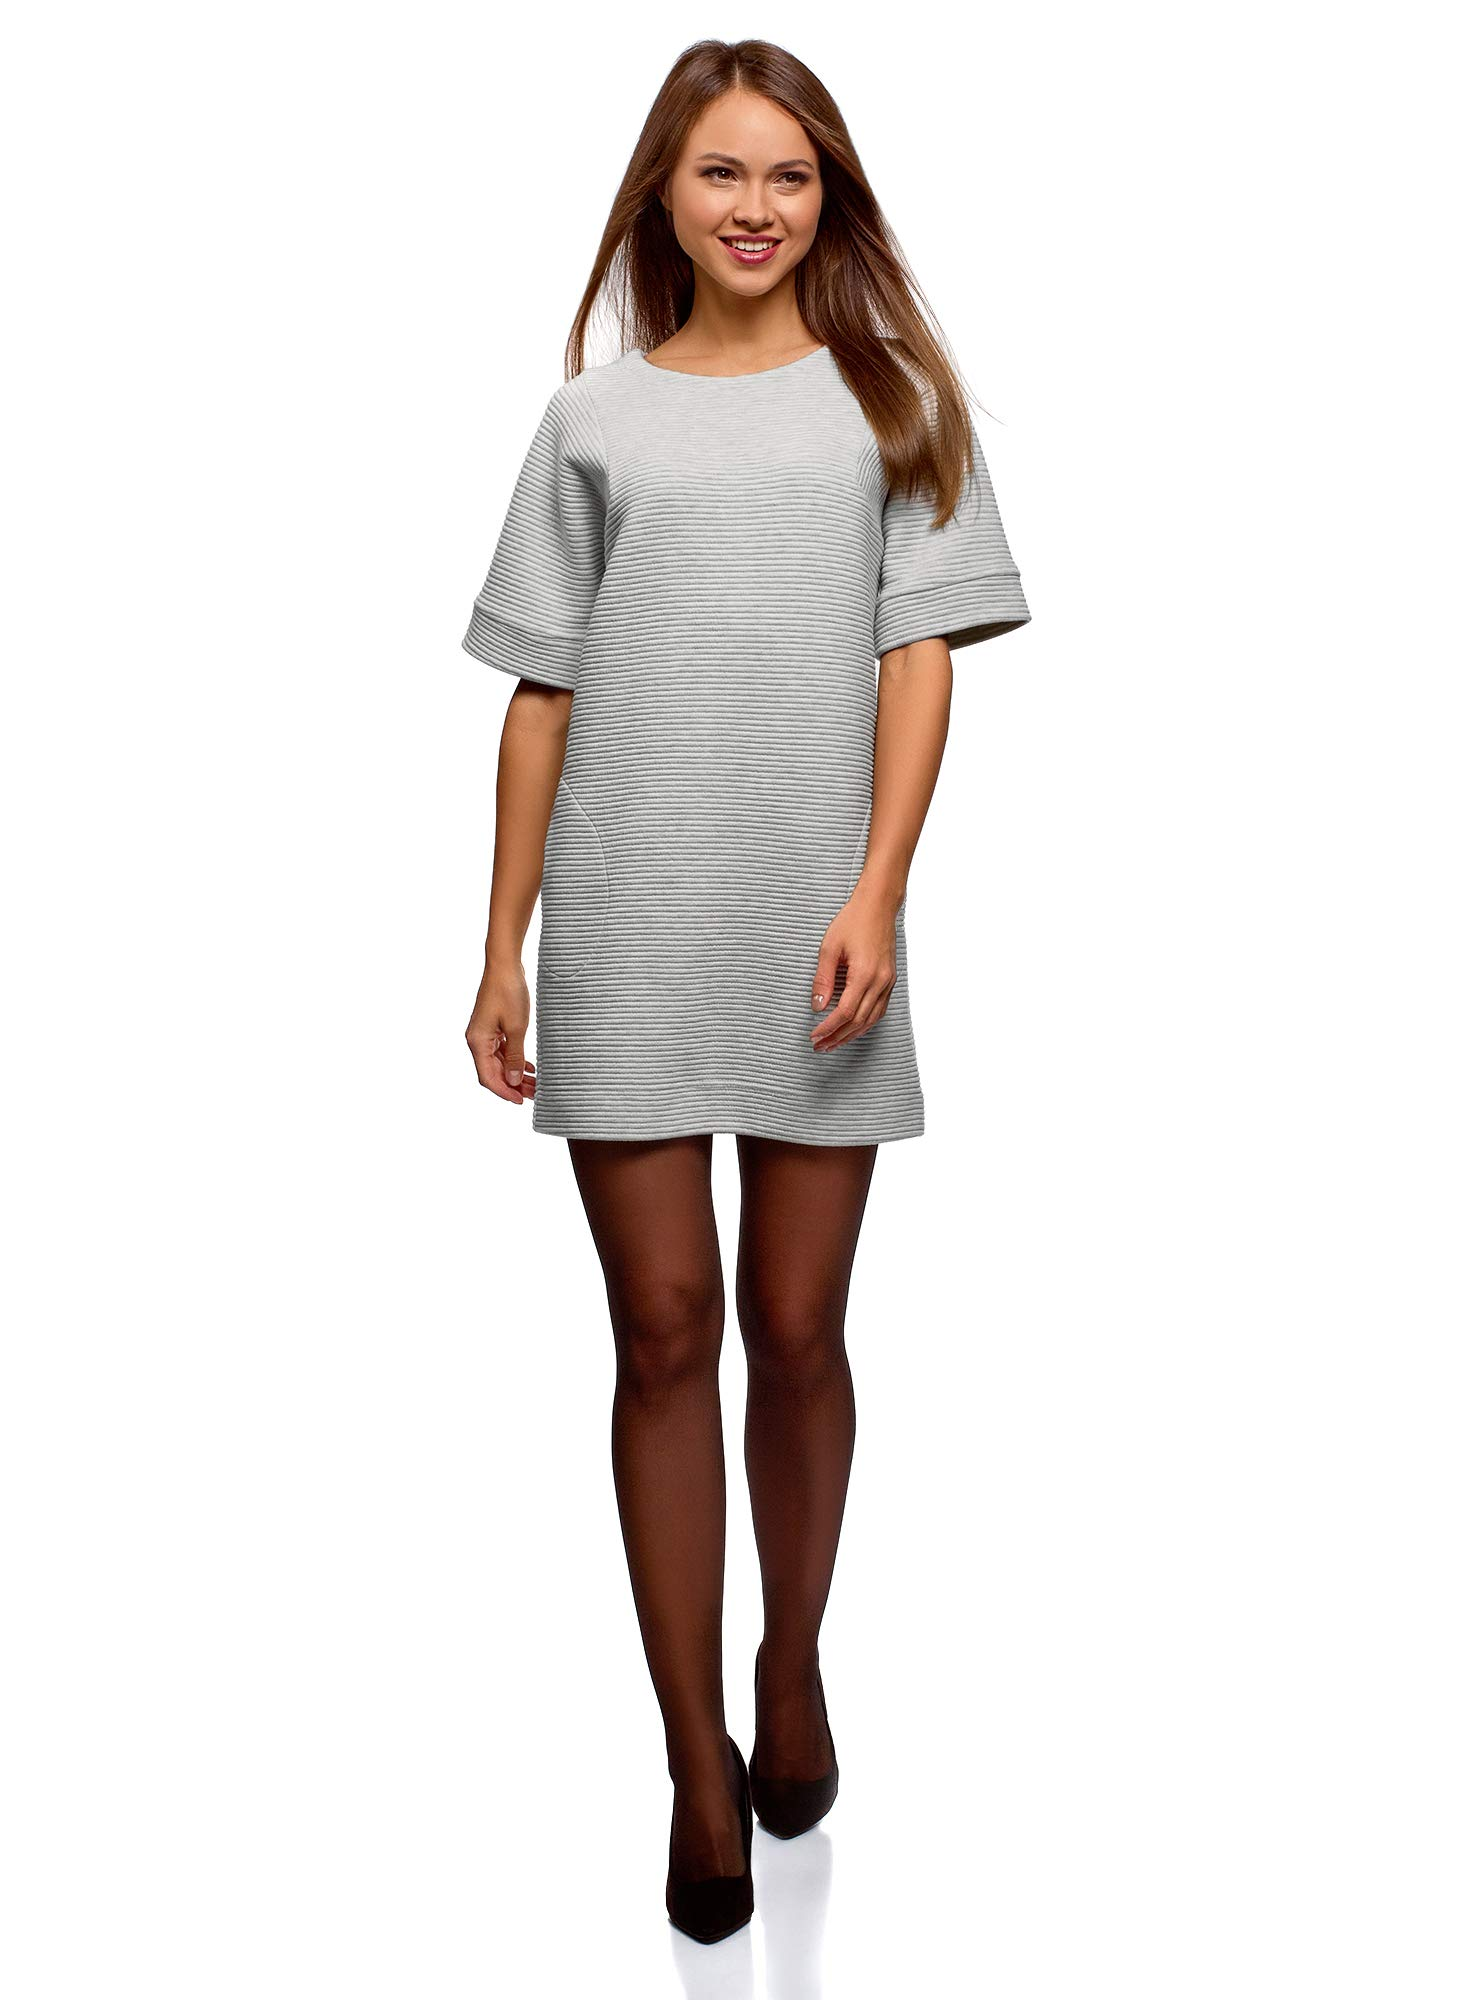 Available at Amazon: oodji Ultra Women's Straight Dress with Pockets